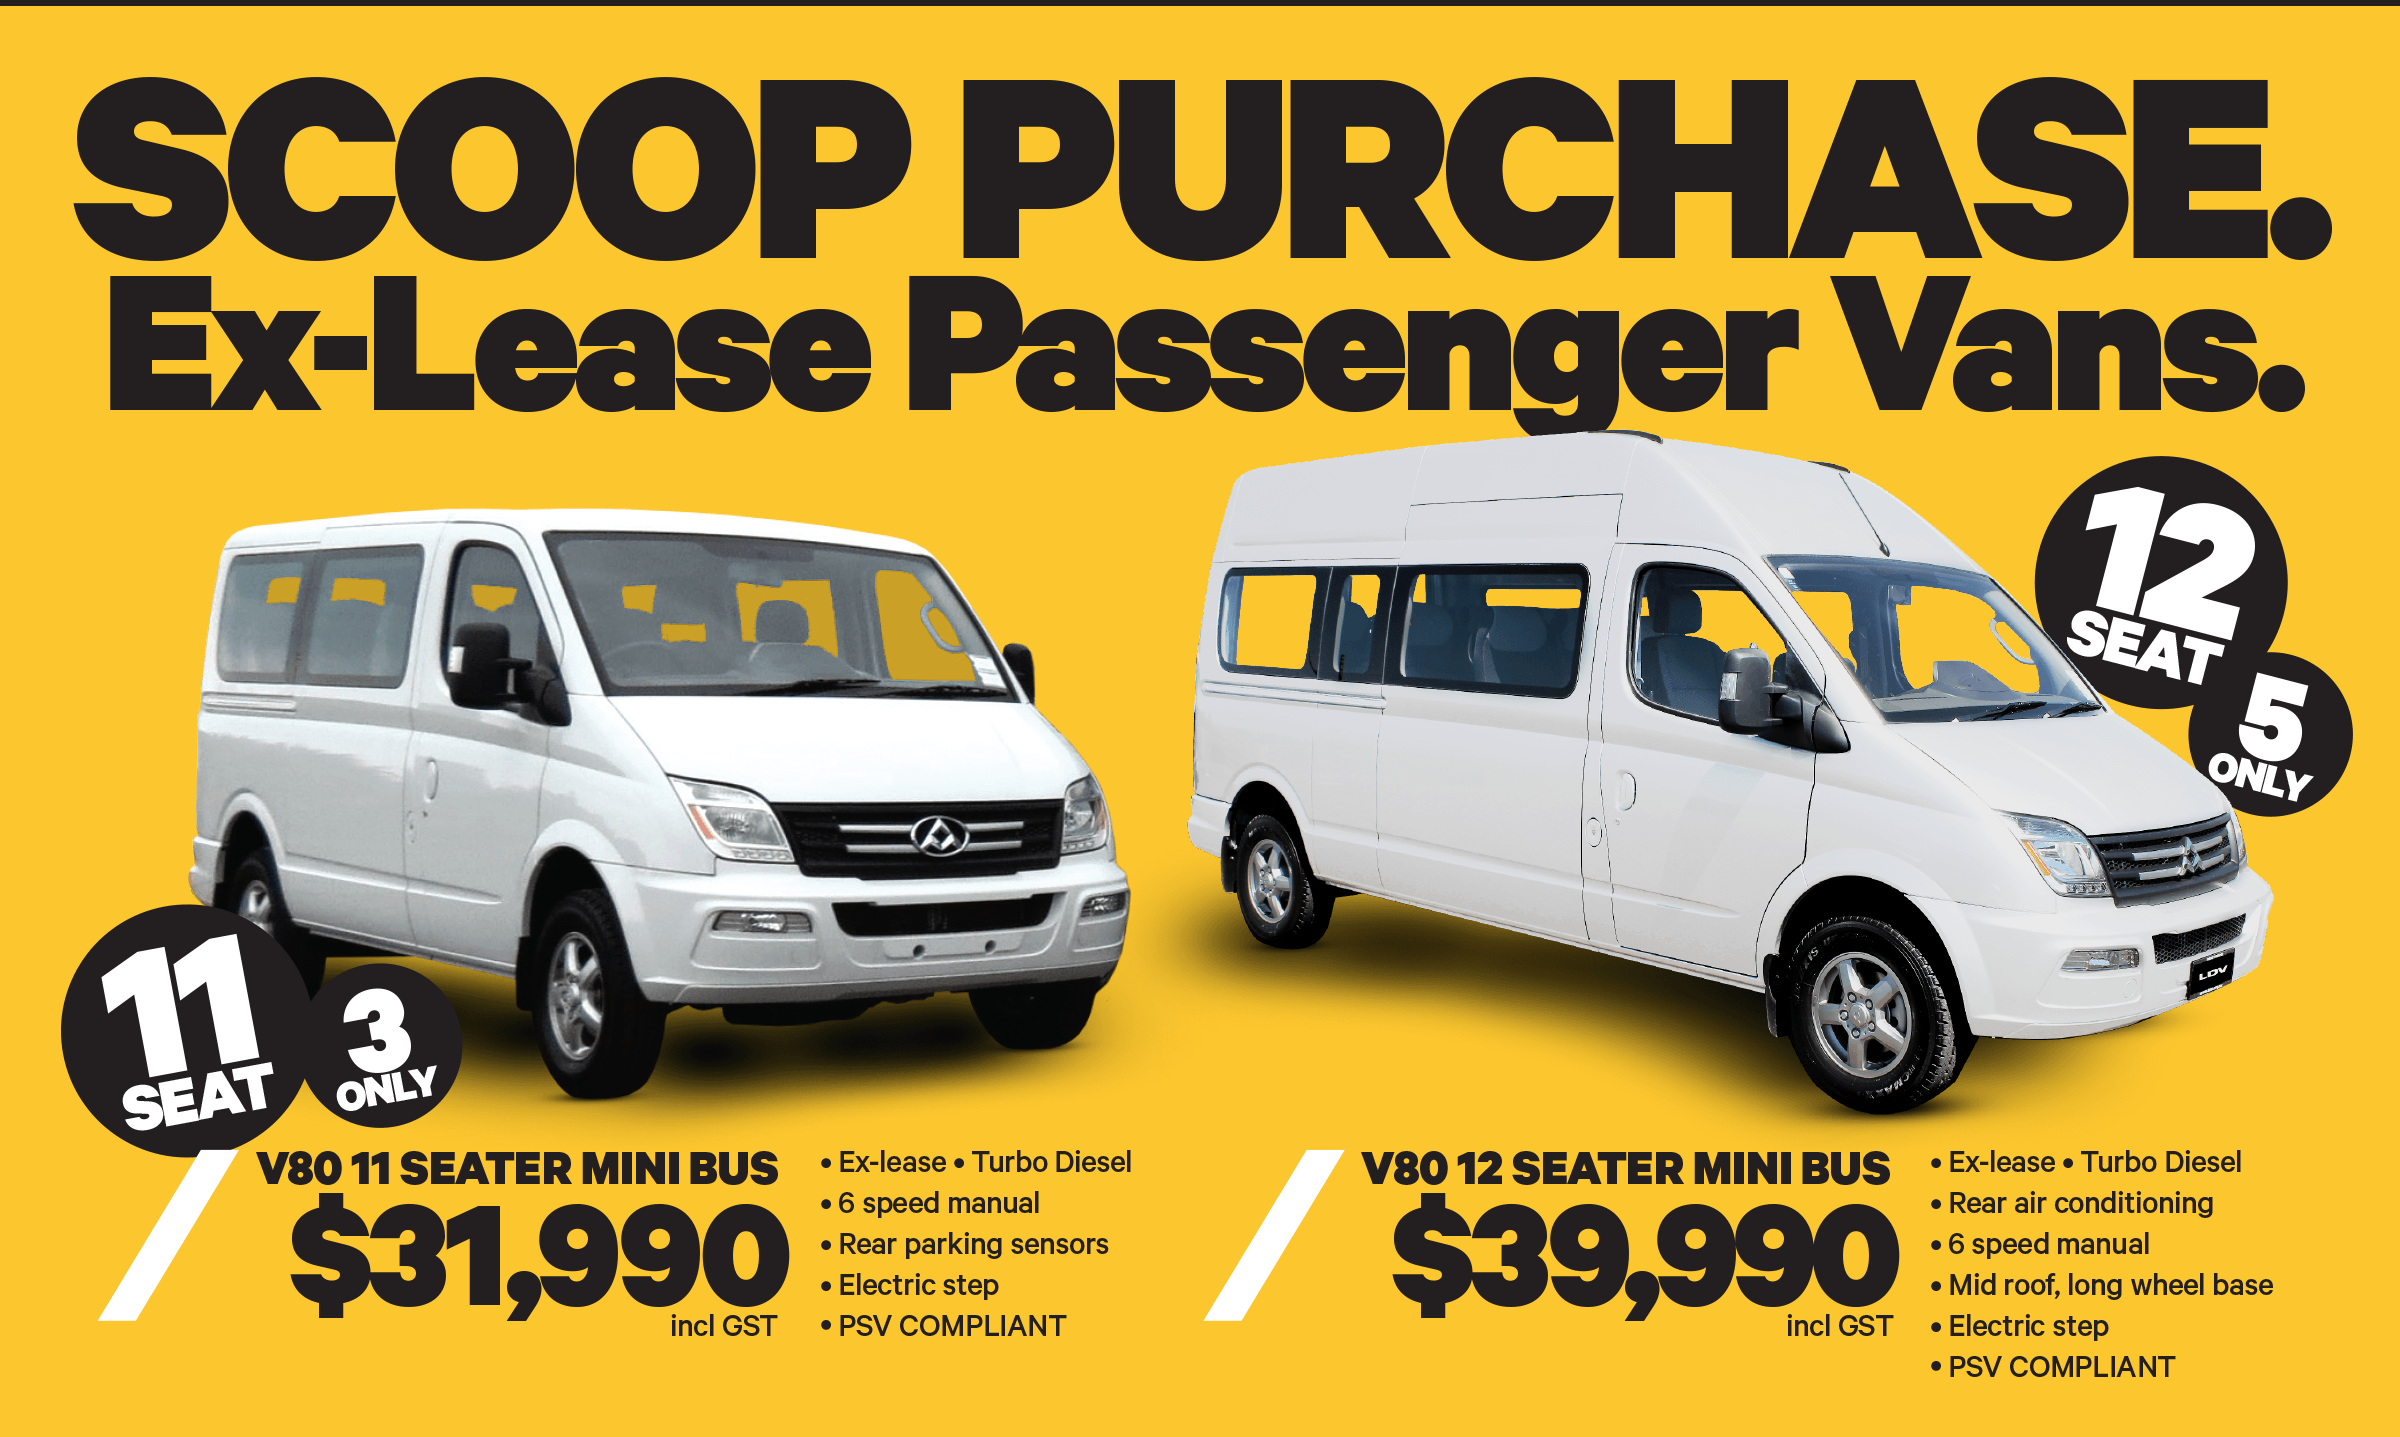 Save now on Ex-Lease LDV Passenger Vans during this LDV scoop sale!